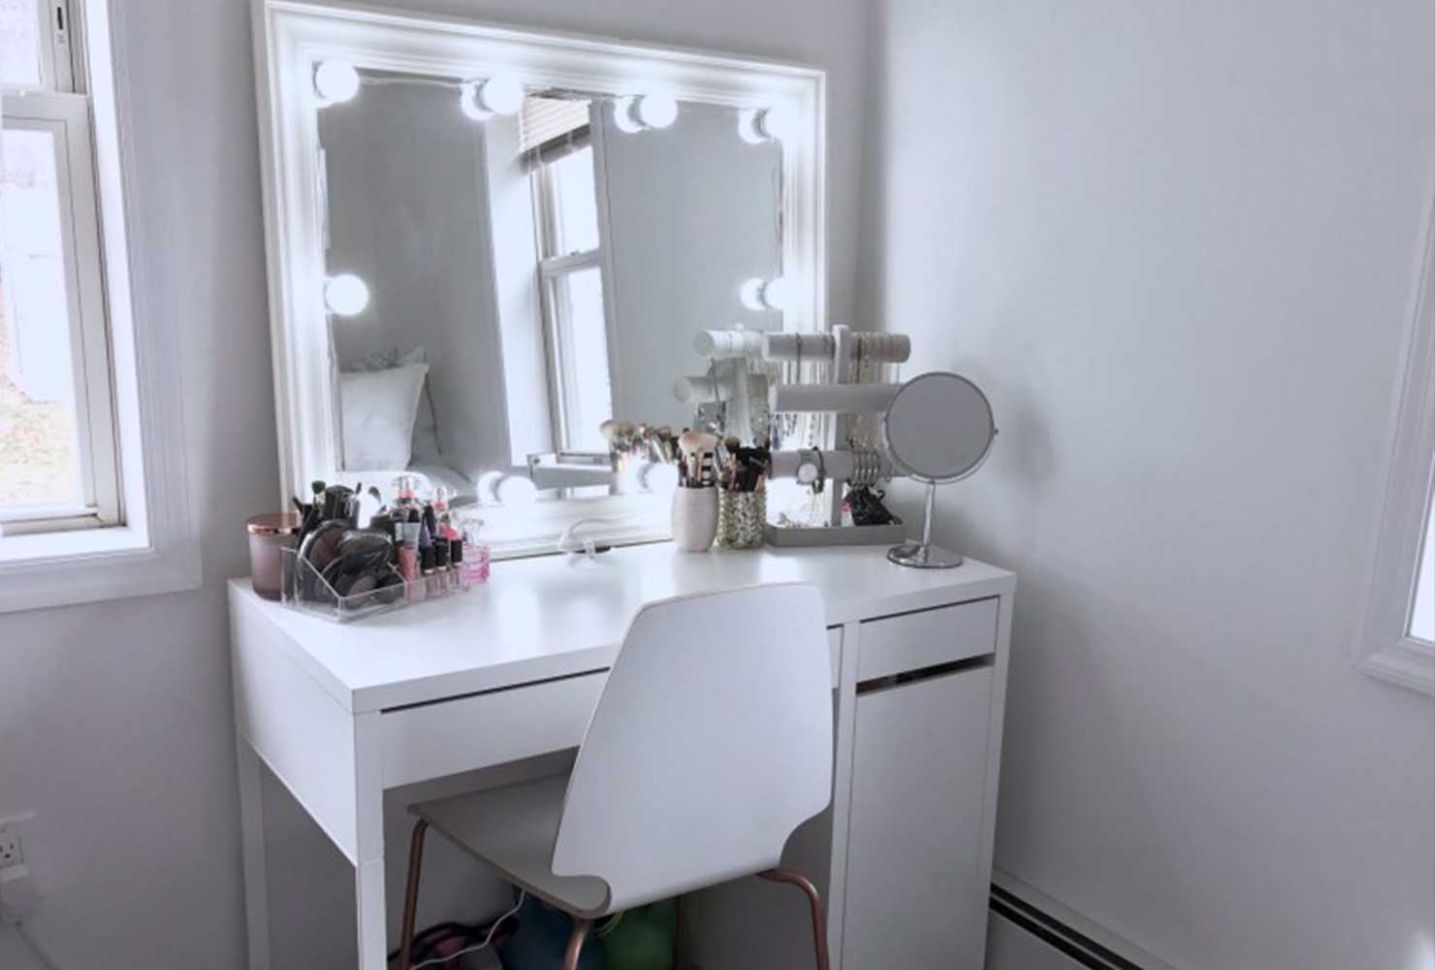 12 Makeup Room Ideas To Brighten Your Morning Routine   Shutterfly - makeup room layout